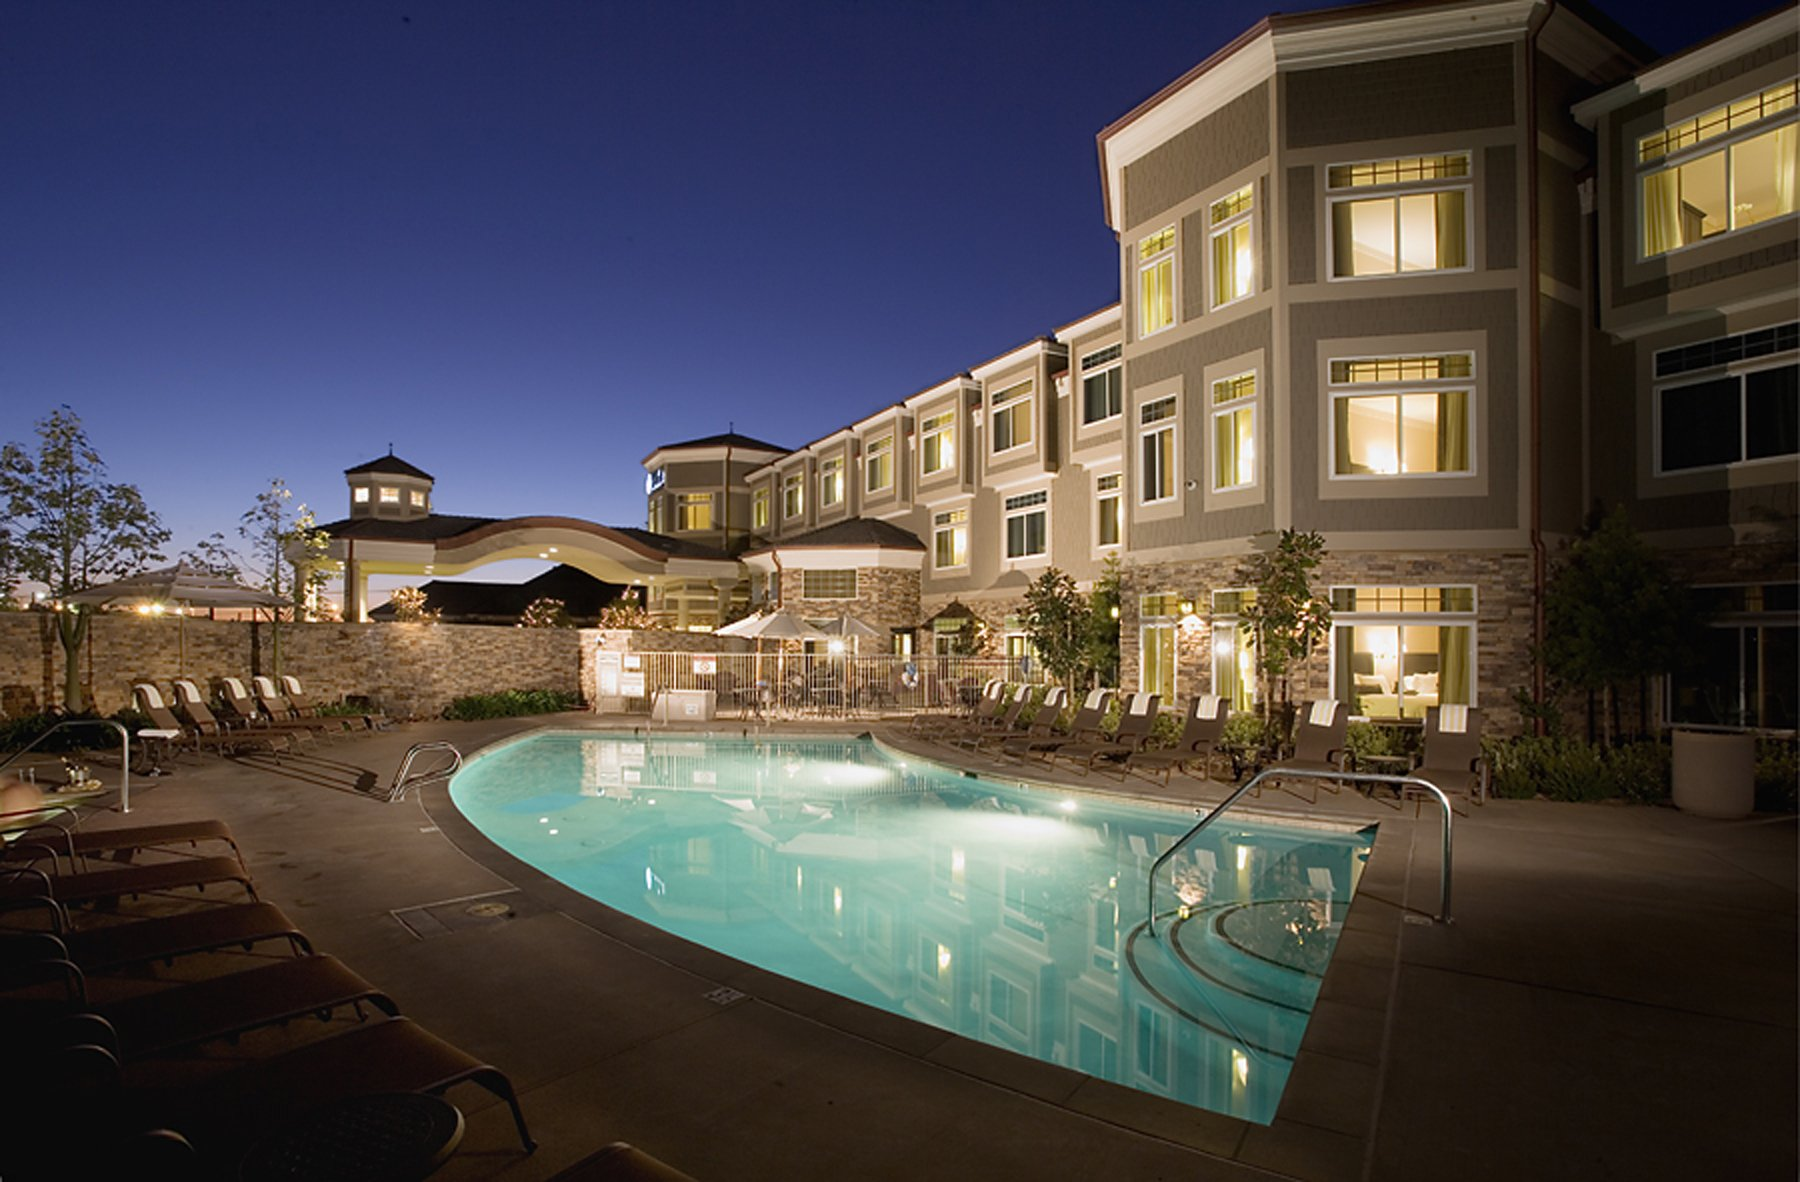 The pool deck lit up at night with the three-story hotel building behind it.